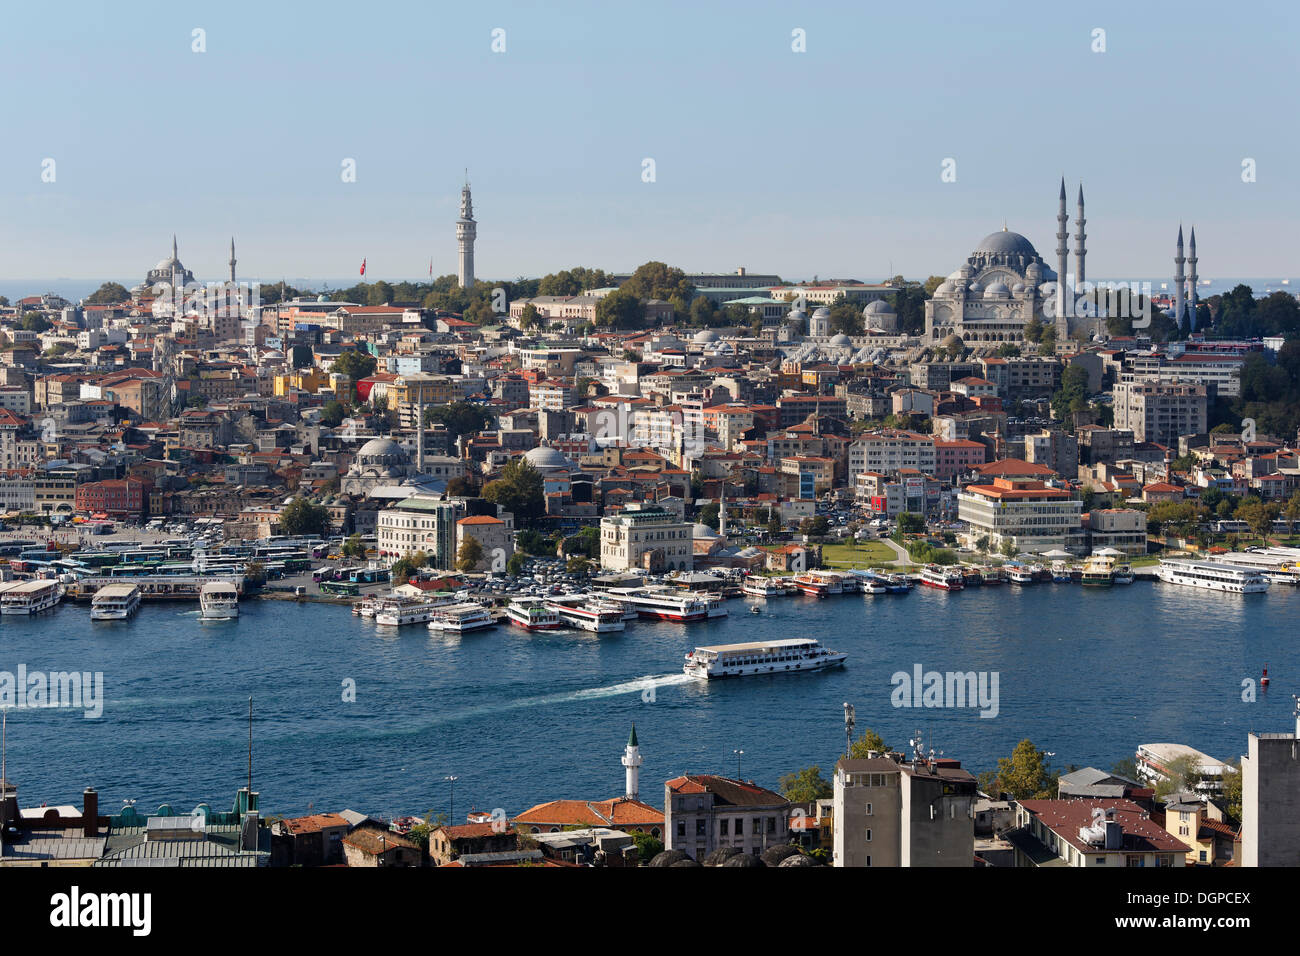 Golden Horn with the Eminönü neighbourhood, Beyazit Tower, left, Süleymaniye Mosque, right, view from Galata Tower, Istanbul - Stock Image